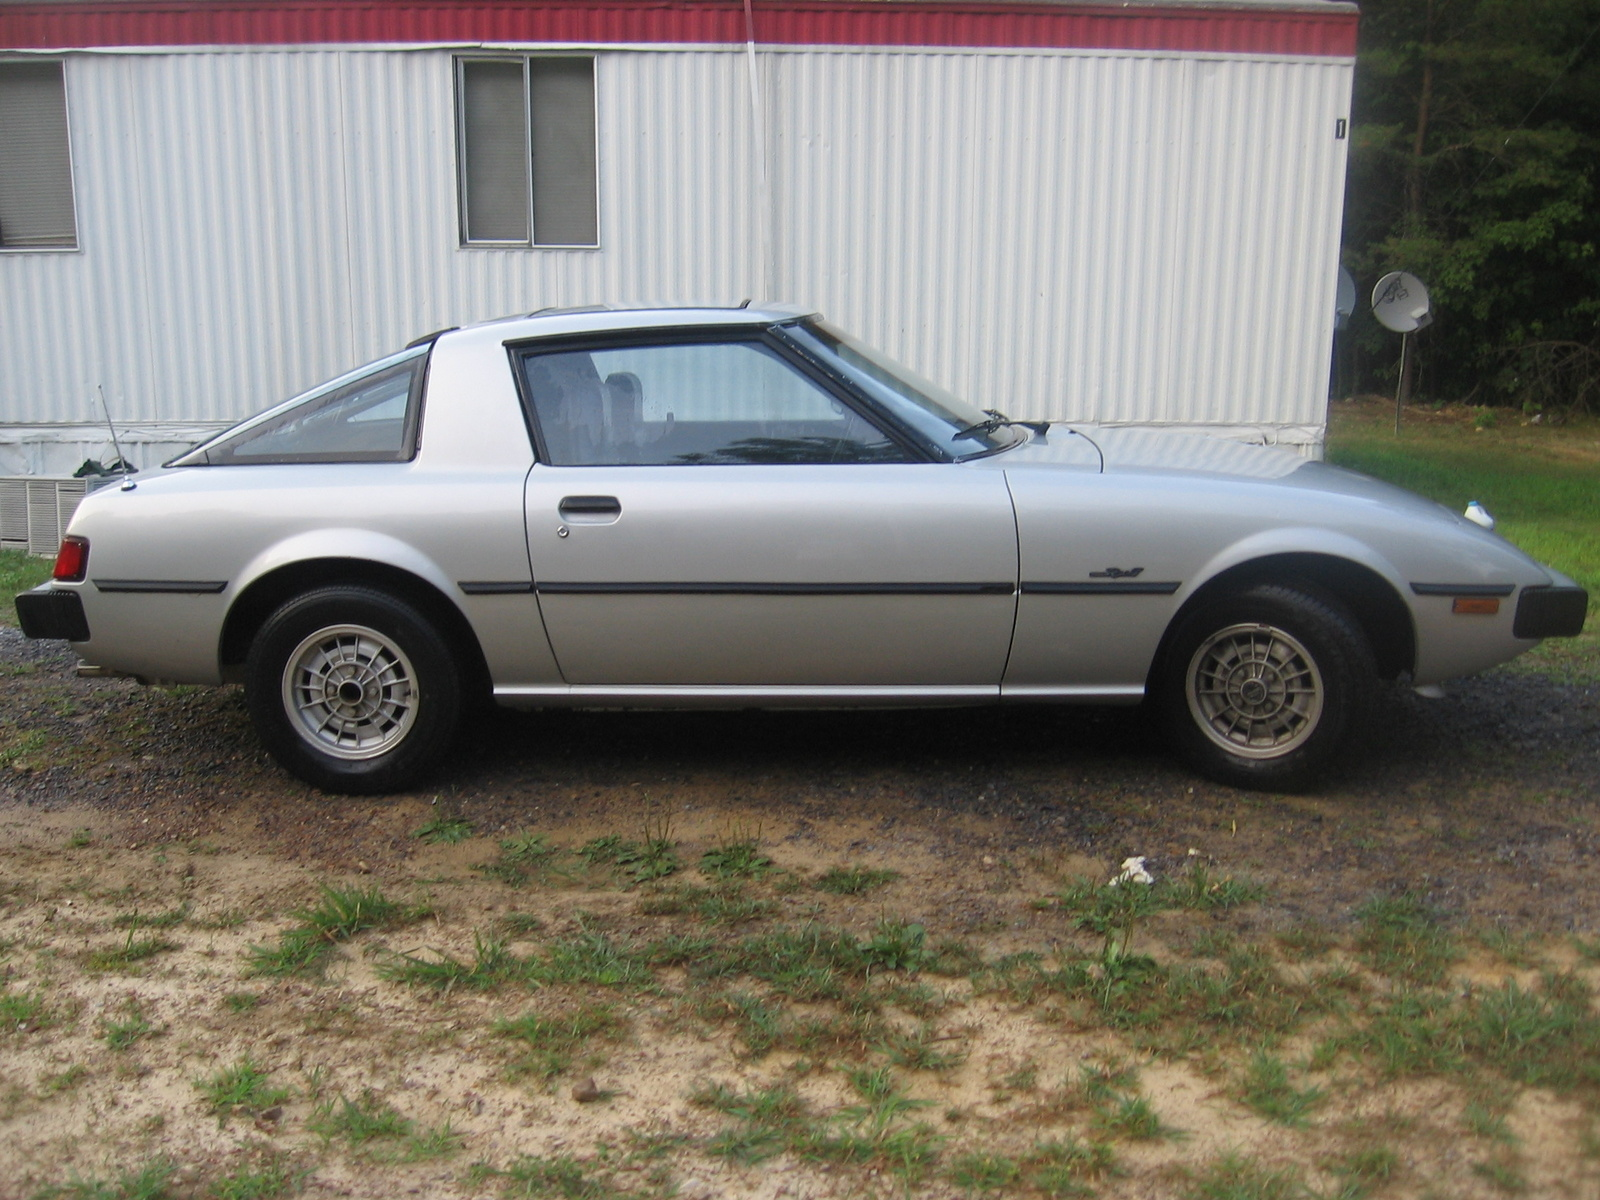 1980 mazda rx7 with 1979 Mazda Rx 7 Pictures C7367 on Mazda Biante 2013 besides File Mazda LUCE 2nd Generation01 further 1979 Mazda Rx 7 Pictures C7367 furthermore Used Mazda Mx 5 Miata also Mazda Rx7fc Wallpaper Ds004 I345.